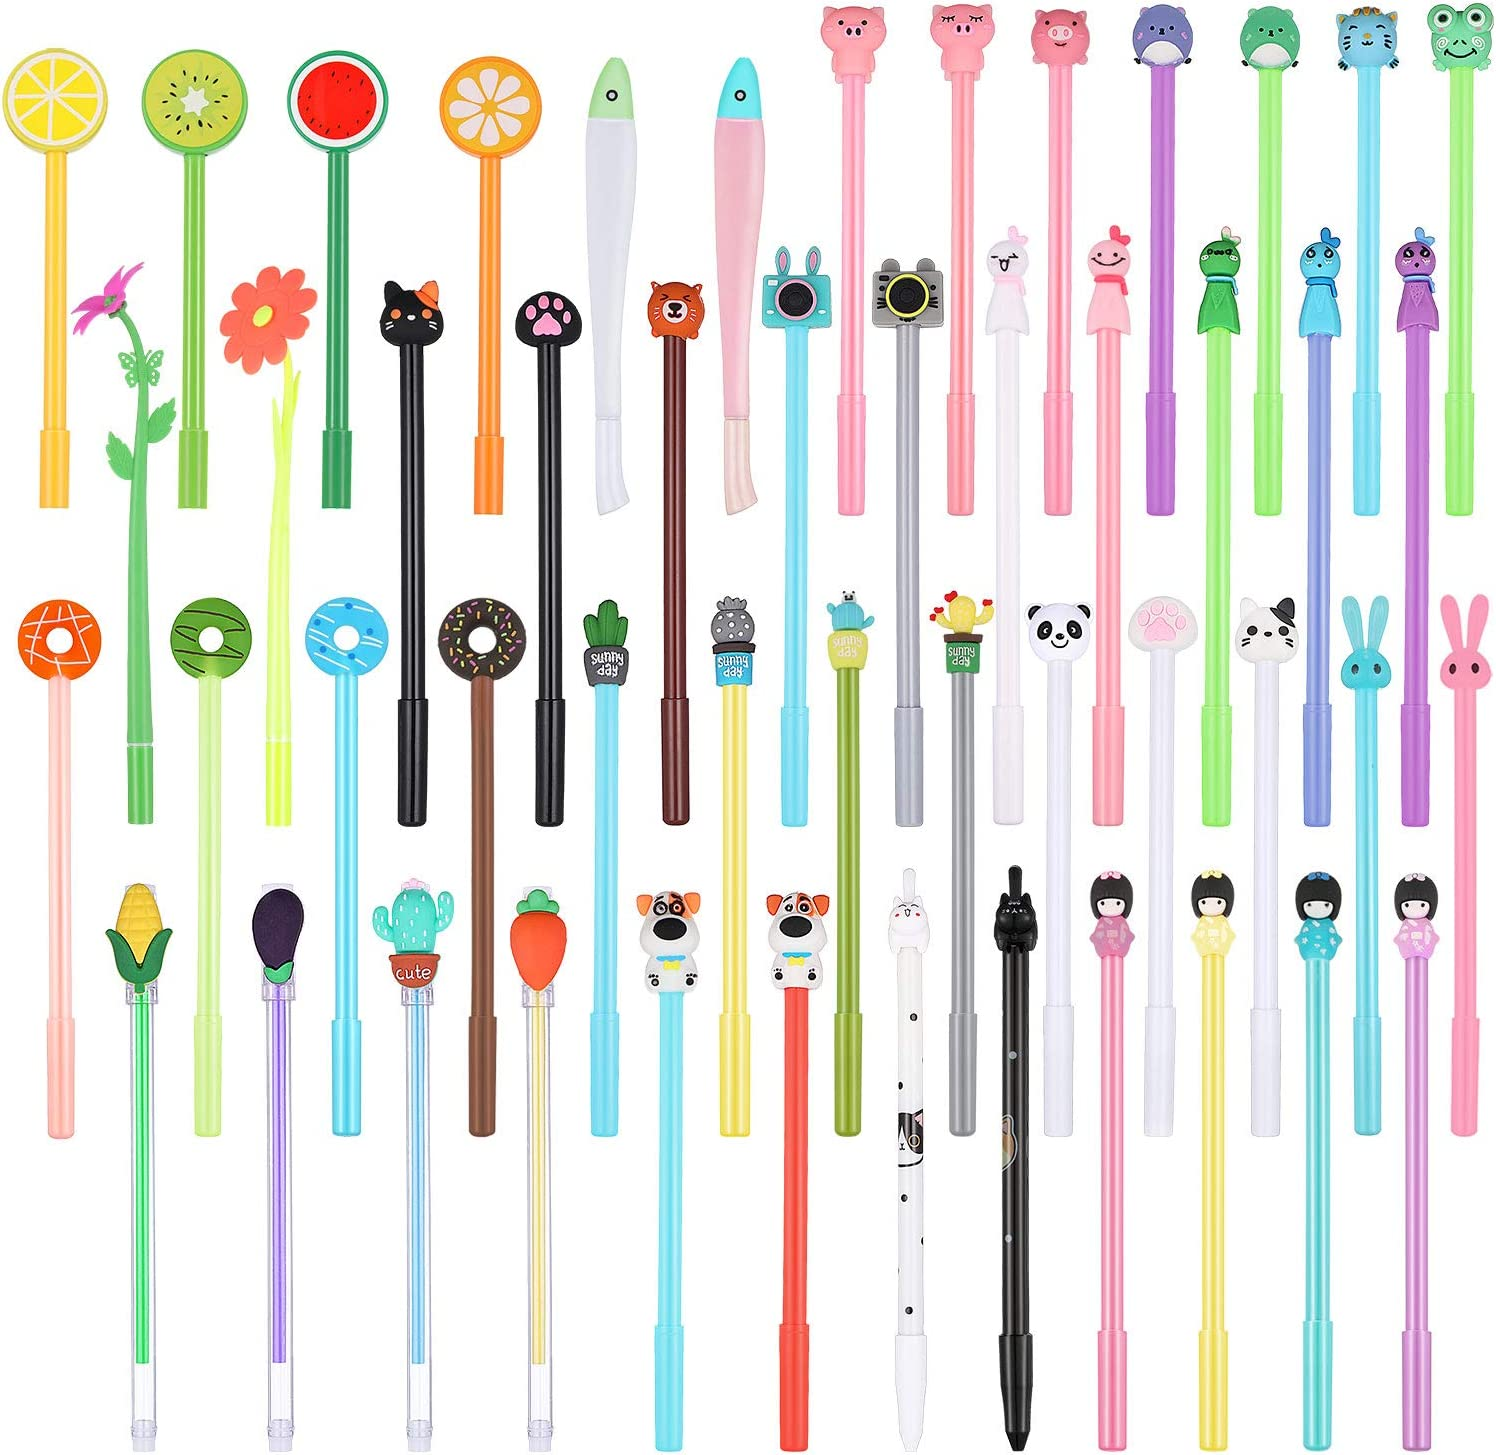 50 Pieces Cartoon Pens Cute Gel Ink Pen Set Rollerball Pens Assorted Style Writing Pens Mixed Food Sweet Rollerball Gel Ink Pens Cute Cartoon Shell for Office School Home Kids Party Favors